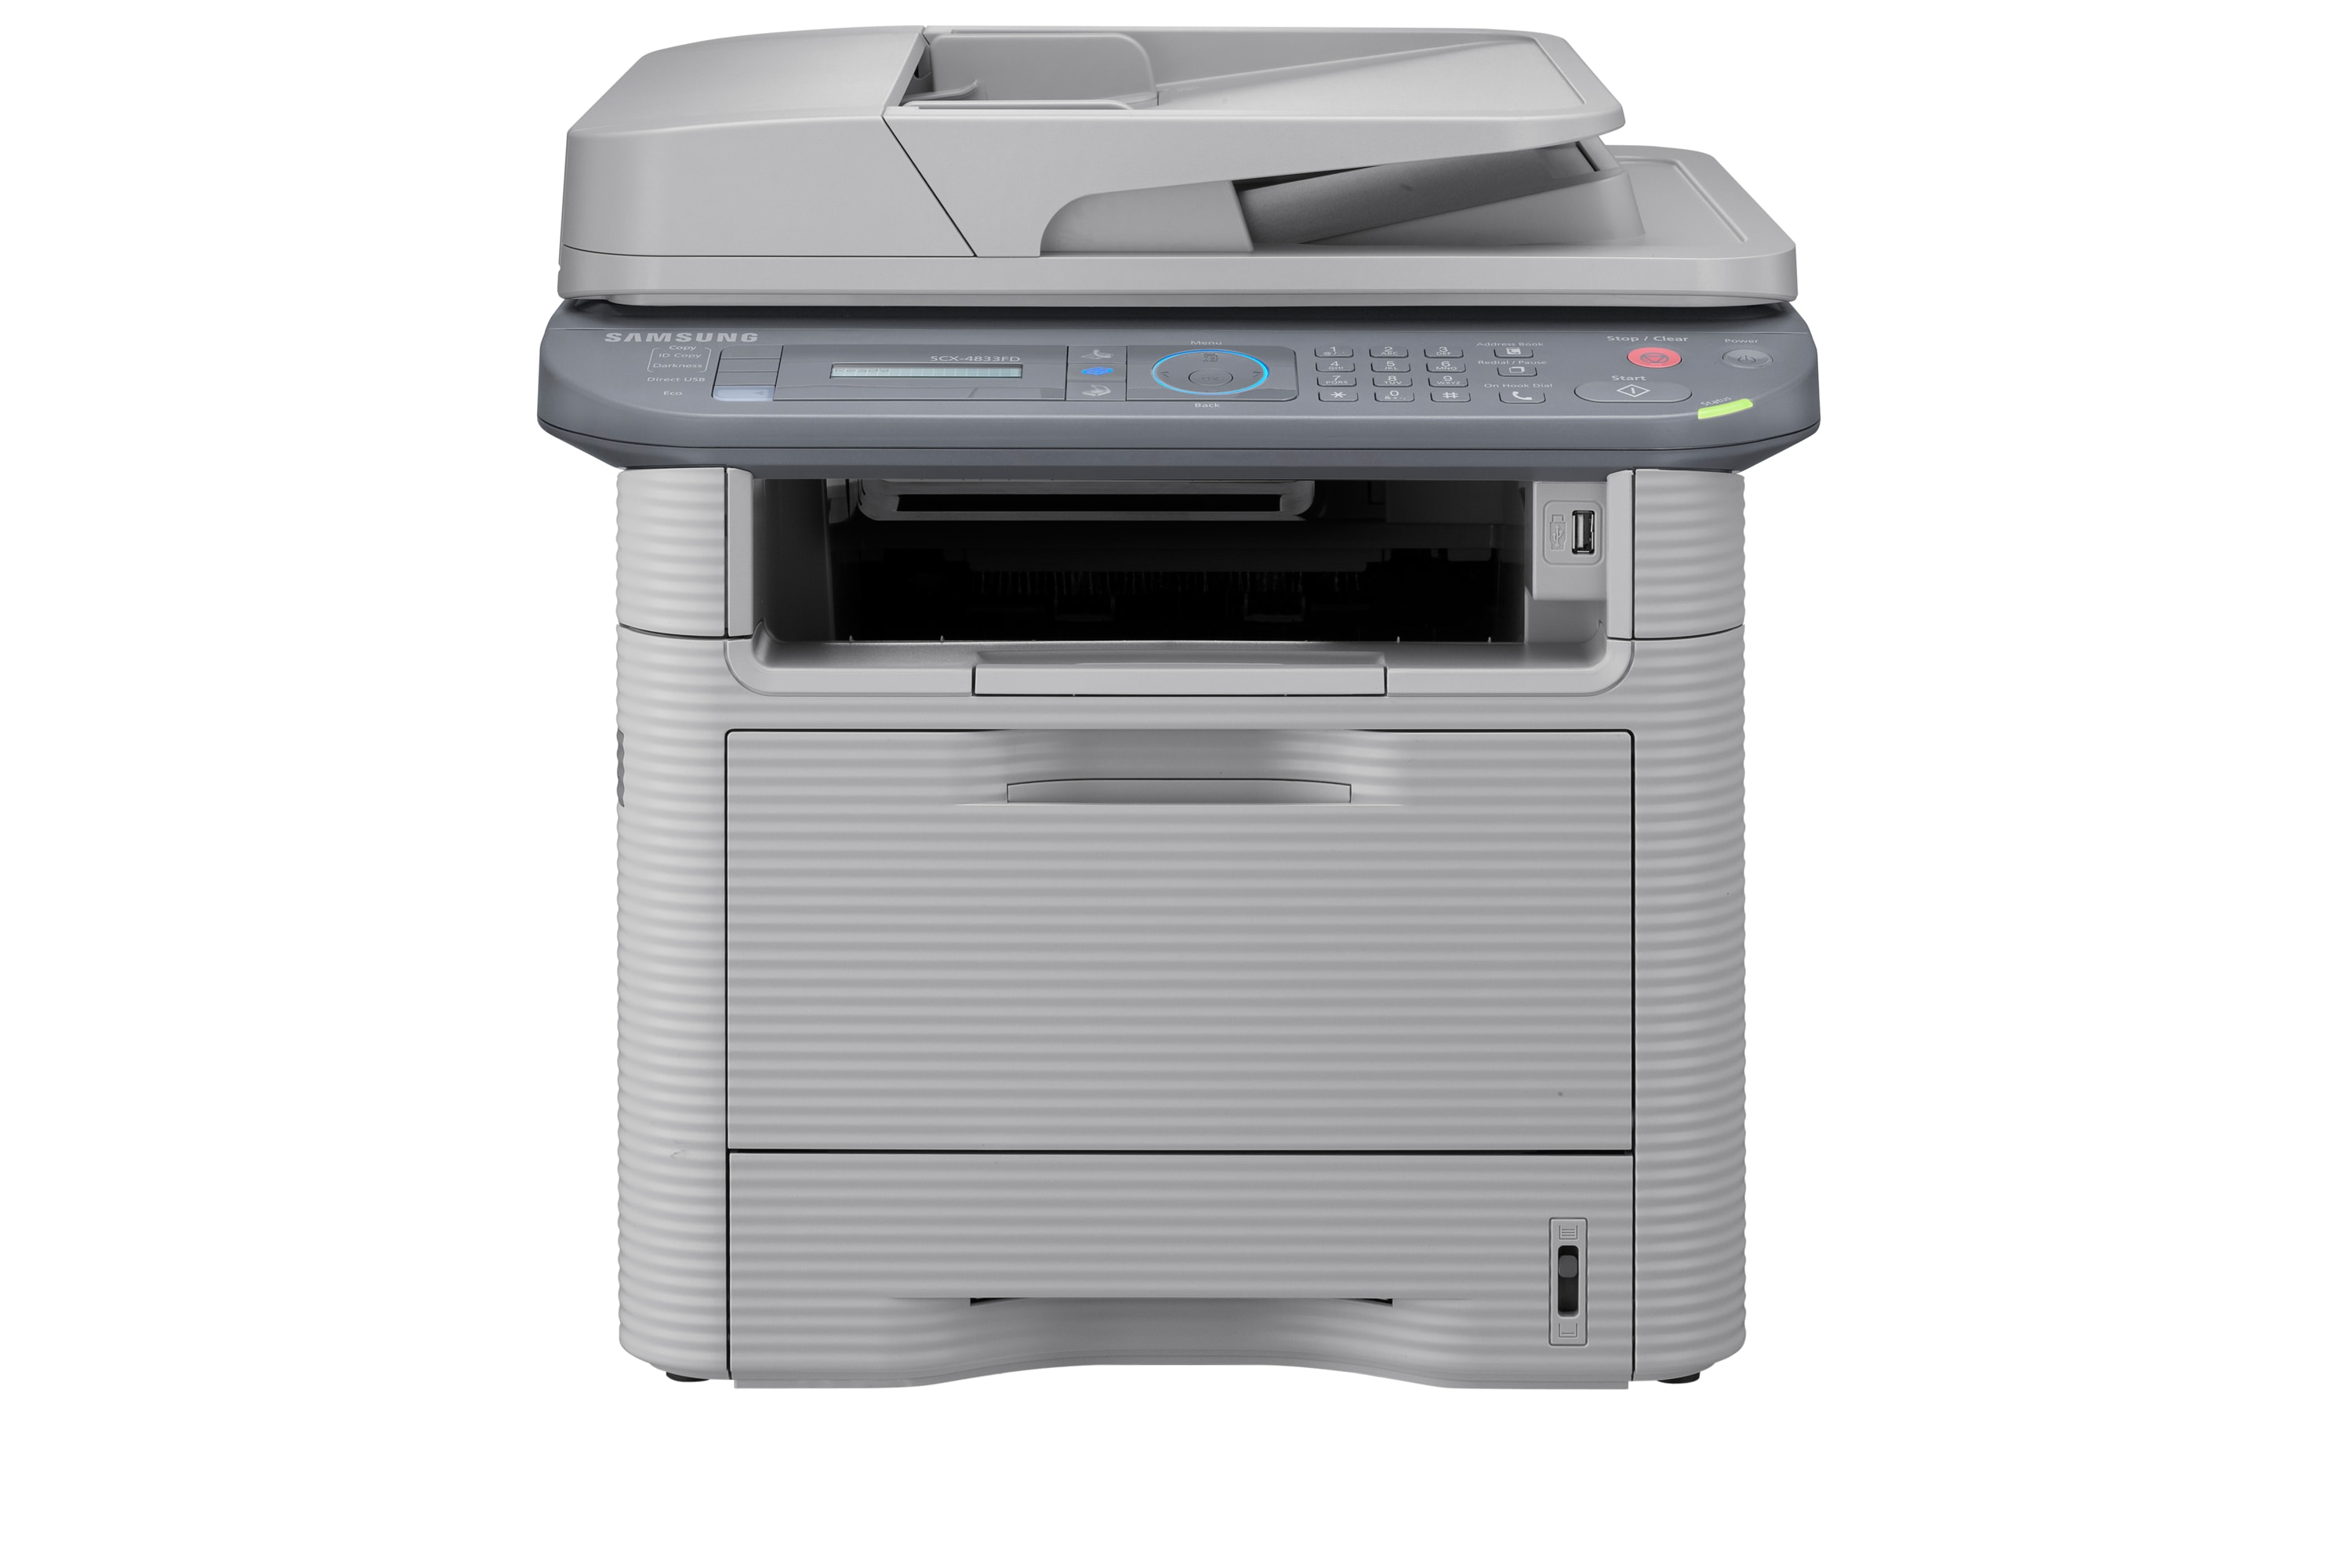 SCX-4833FD 31ppm A4 Black & White Multifunction Printer